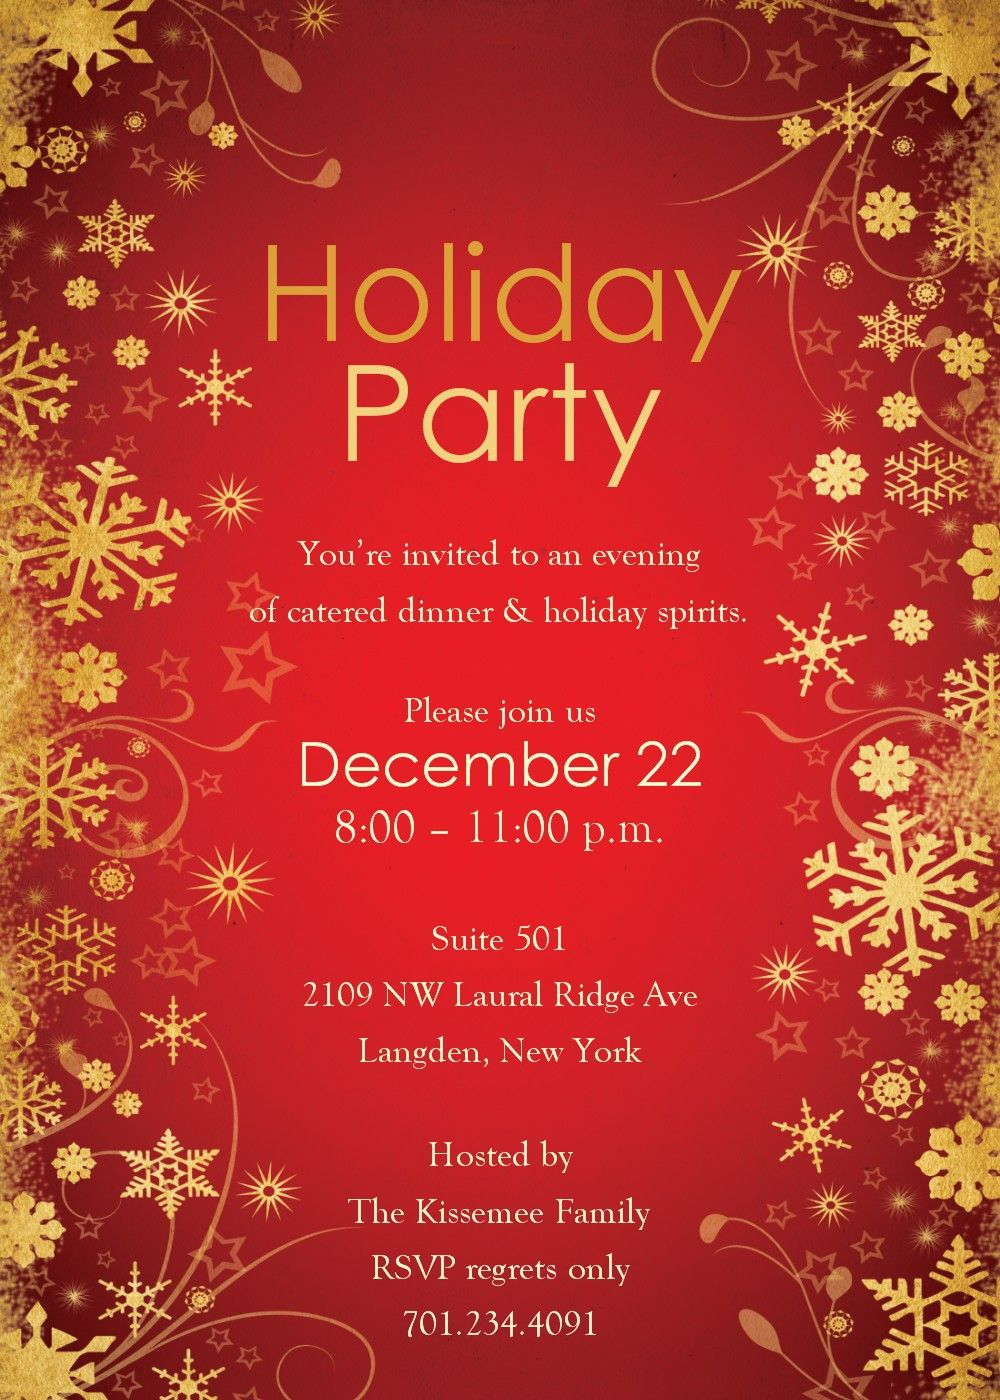 Christmas Party Invitations Templates Word | Cookie Swap | Pinterest ...